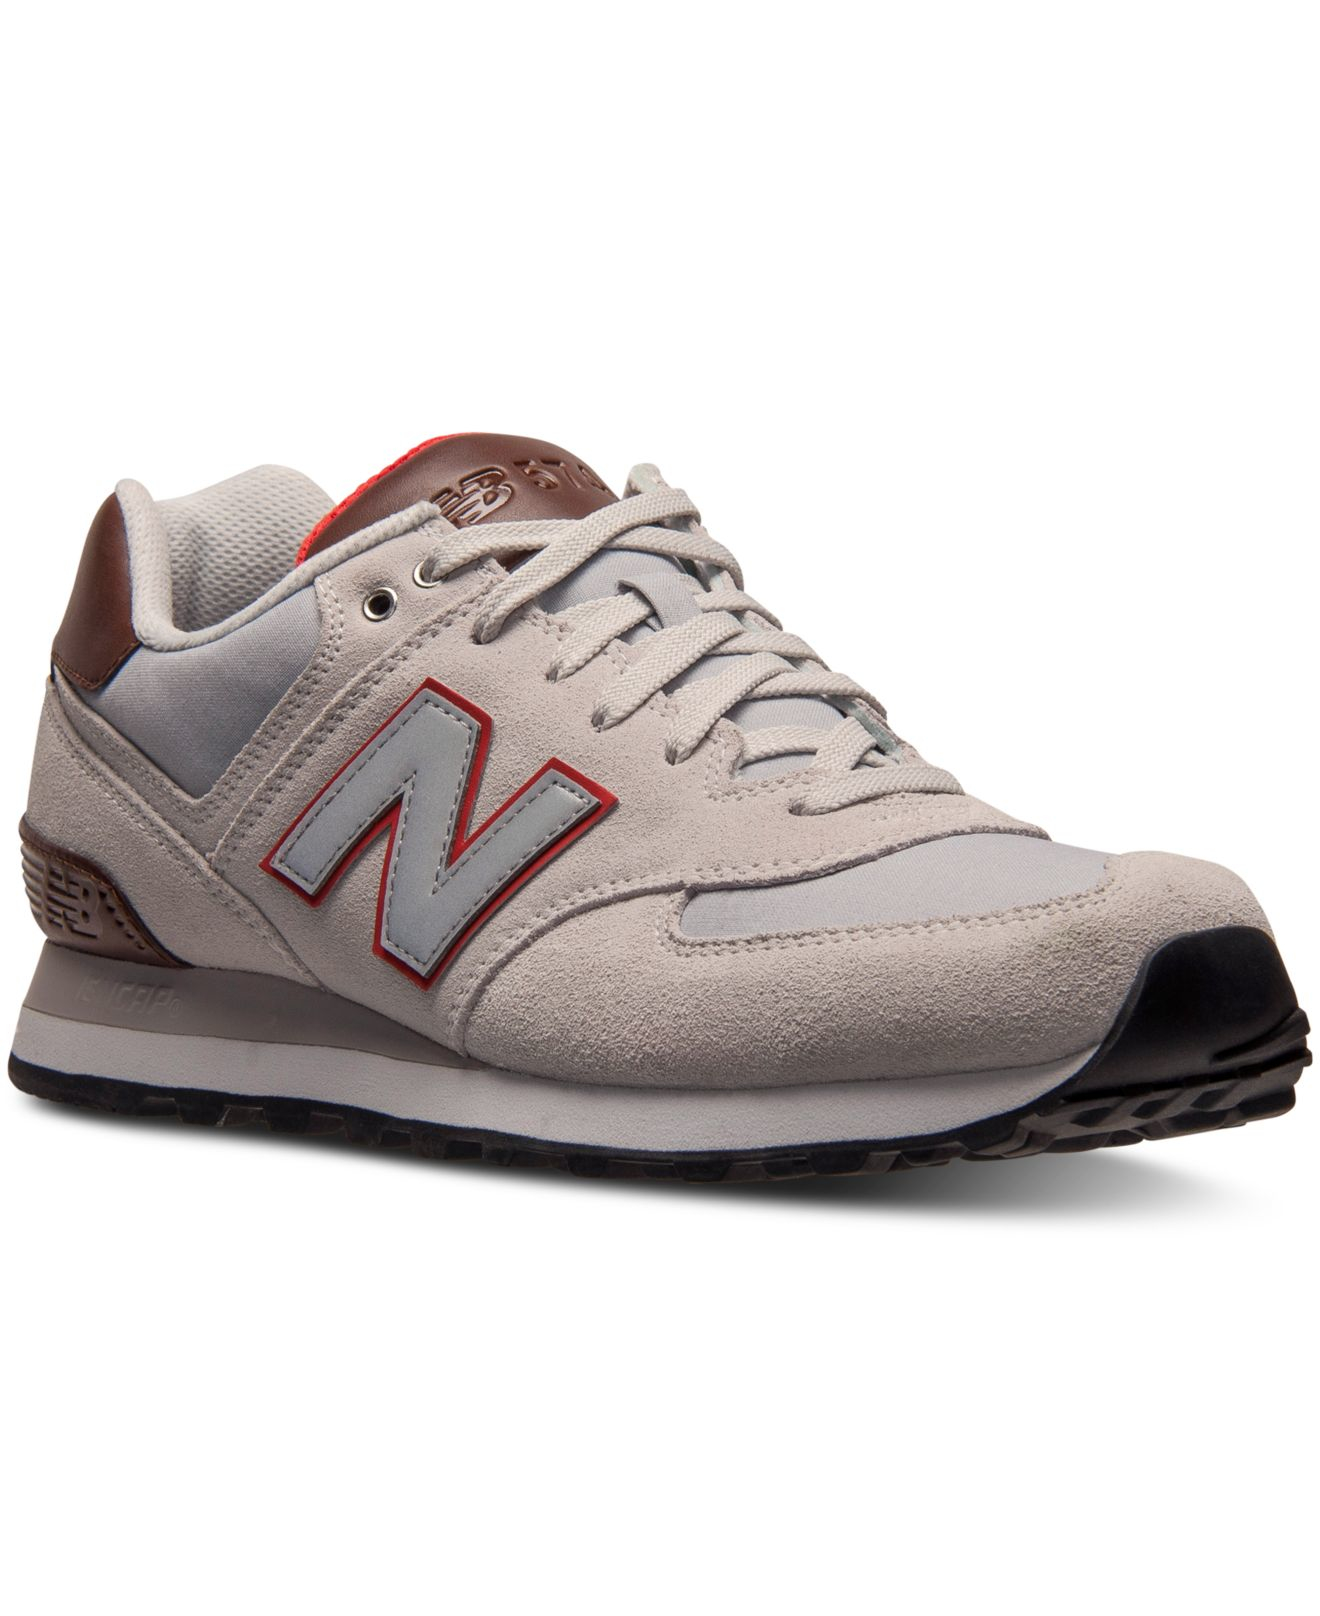 4988277ed0 ... coupon code for lyst new balance mens 574 beach cruiser casual sneakers  from 194c9 b026a